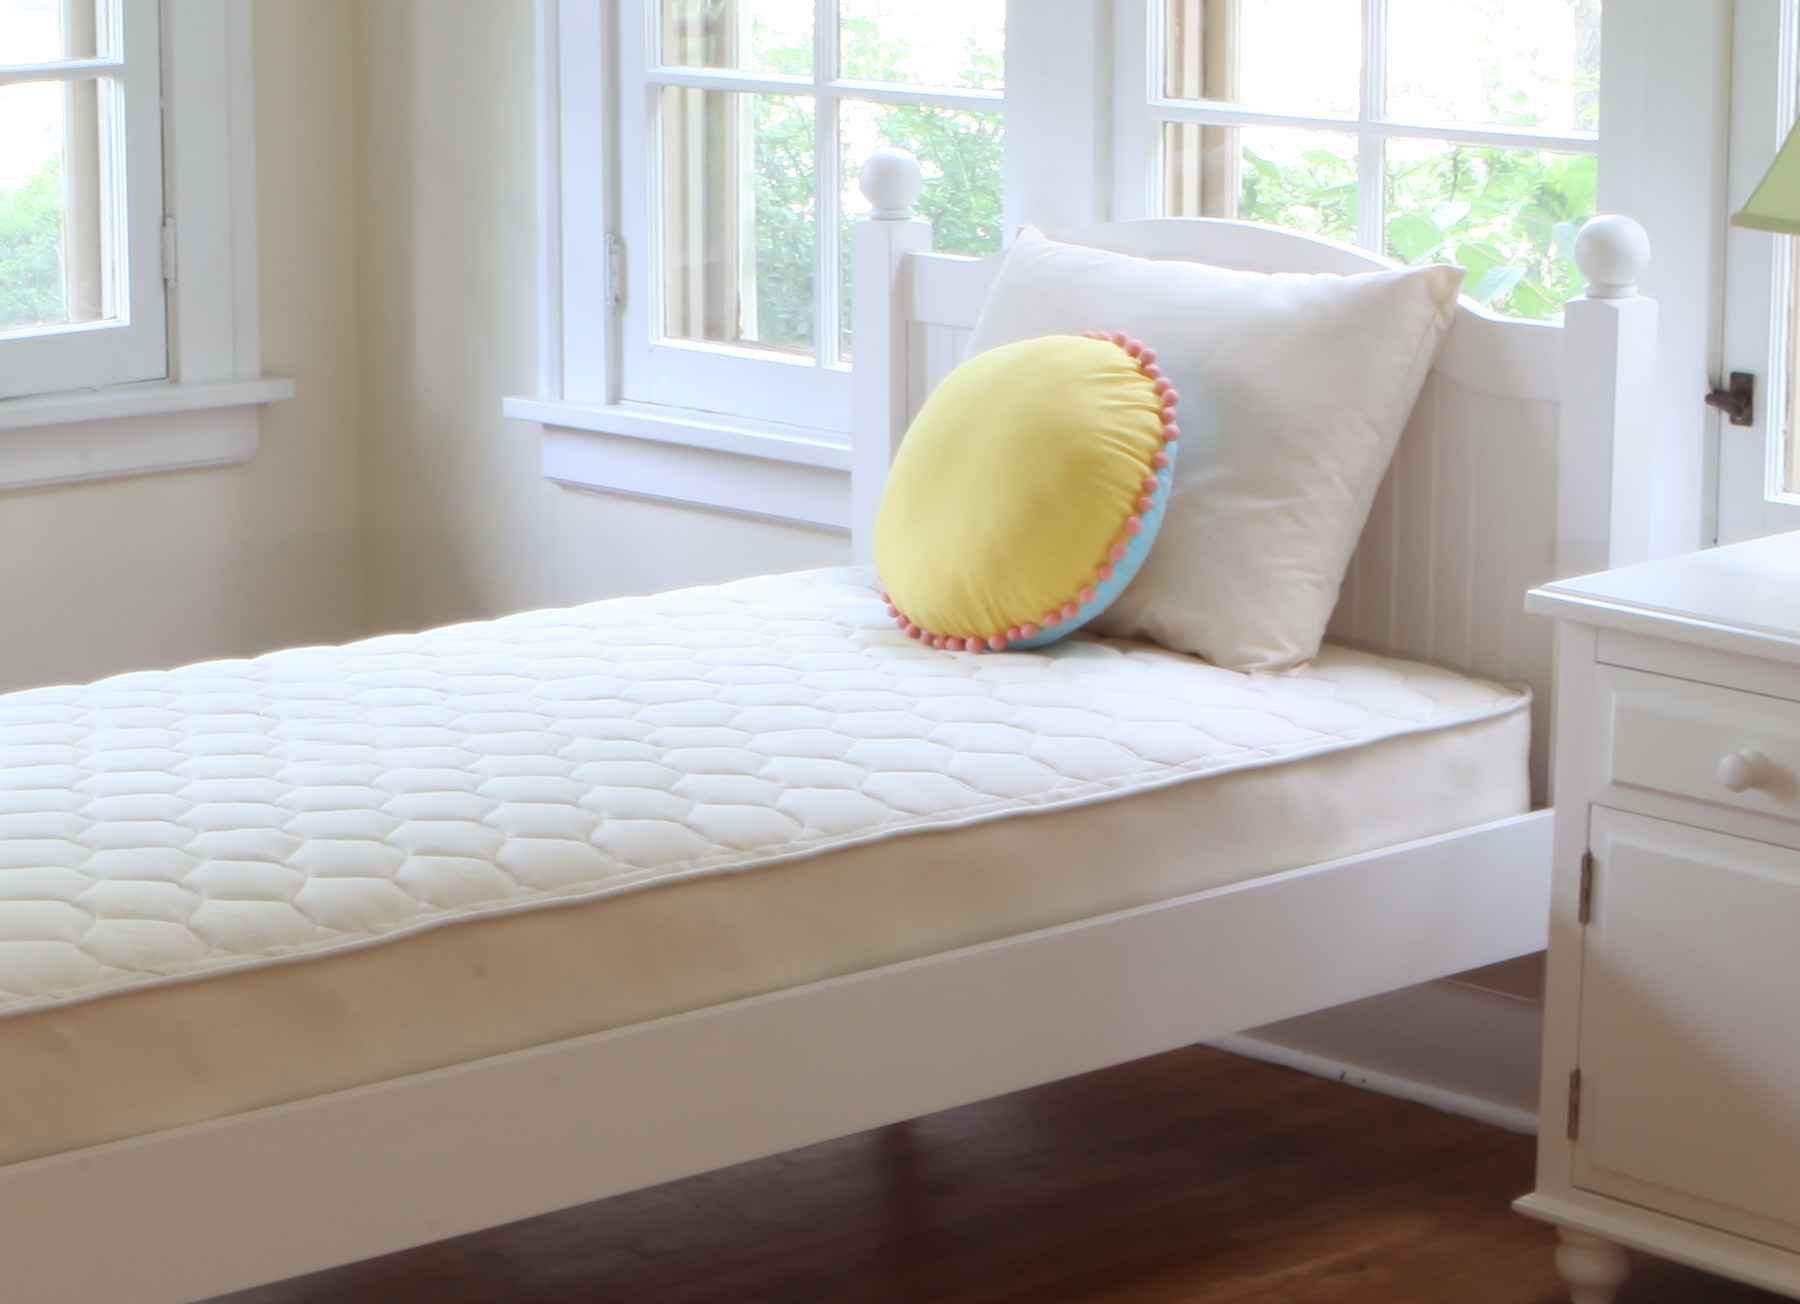 Naturepedic Organic Cotton Quilted Deluxe Mattress Reviews Goodbed Com